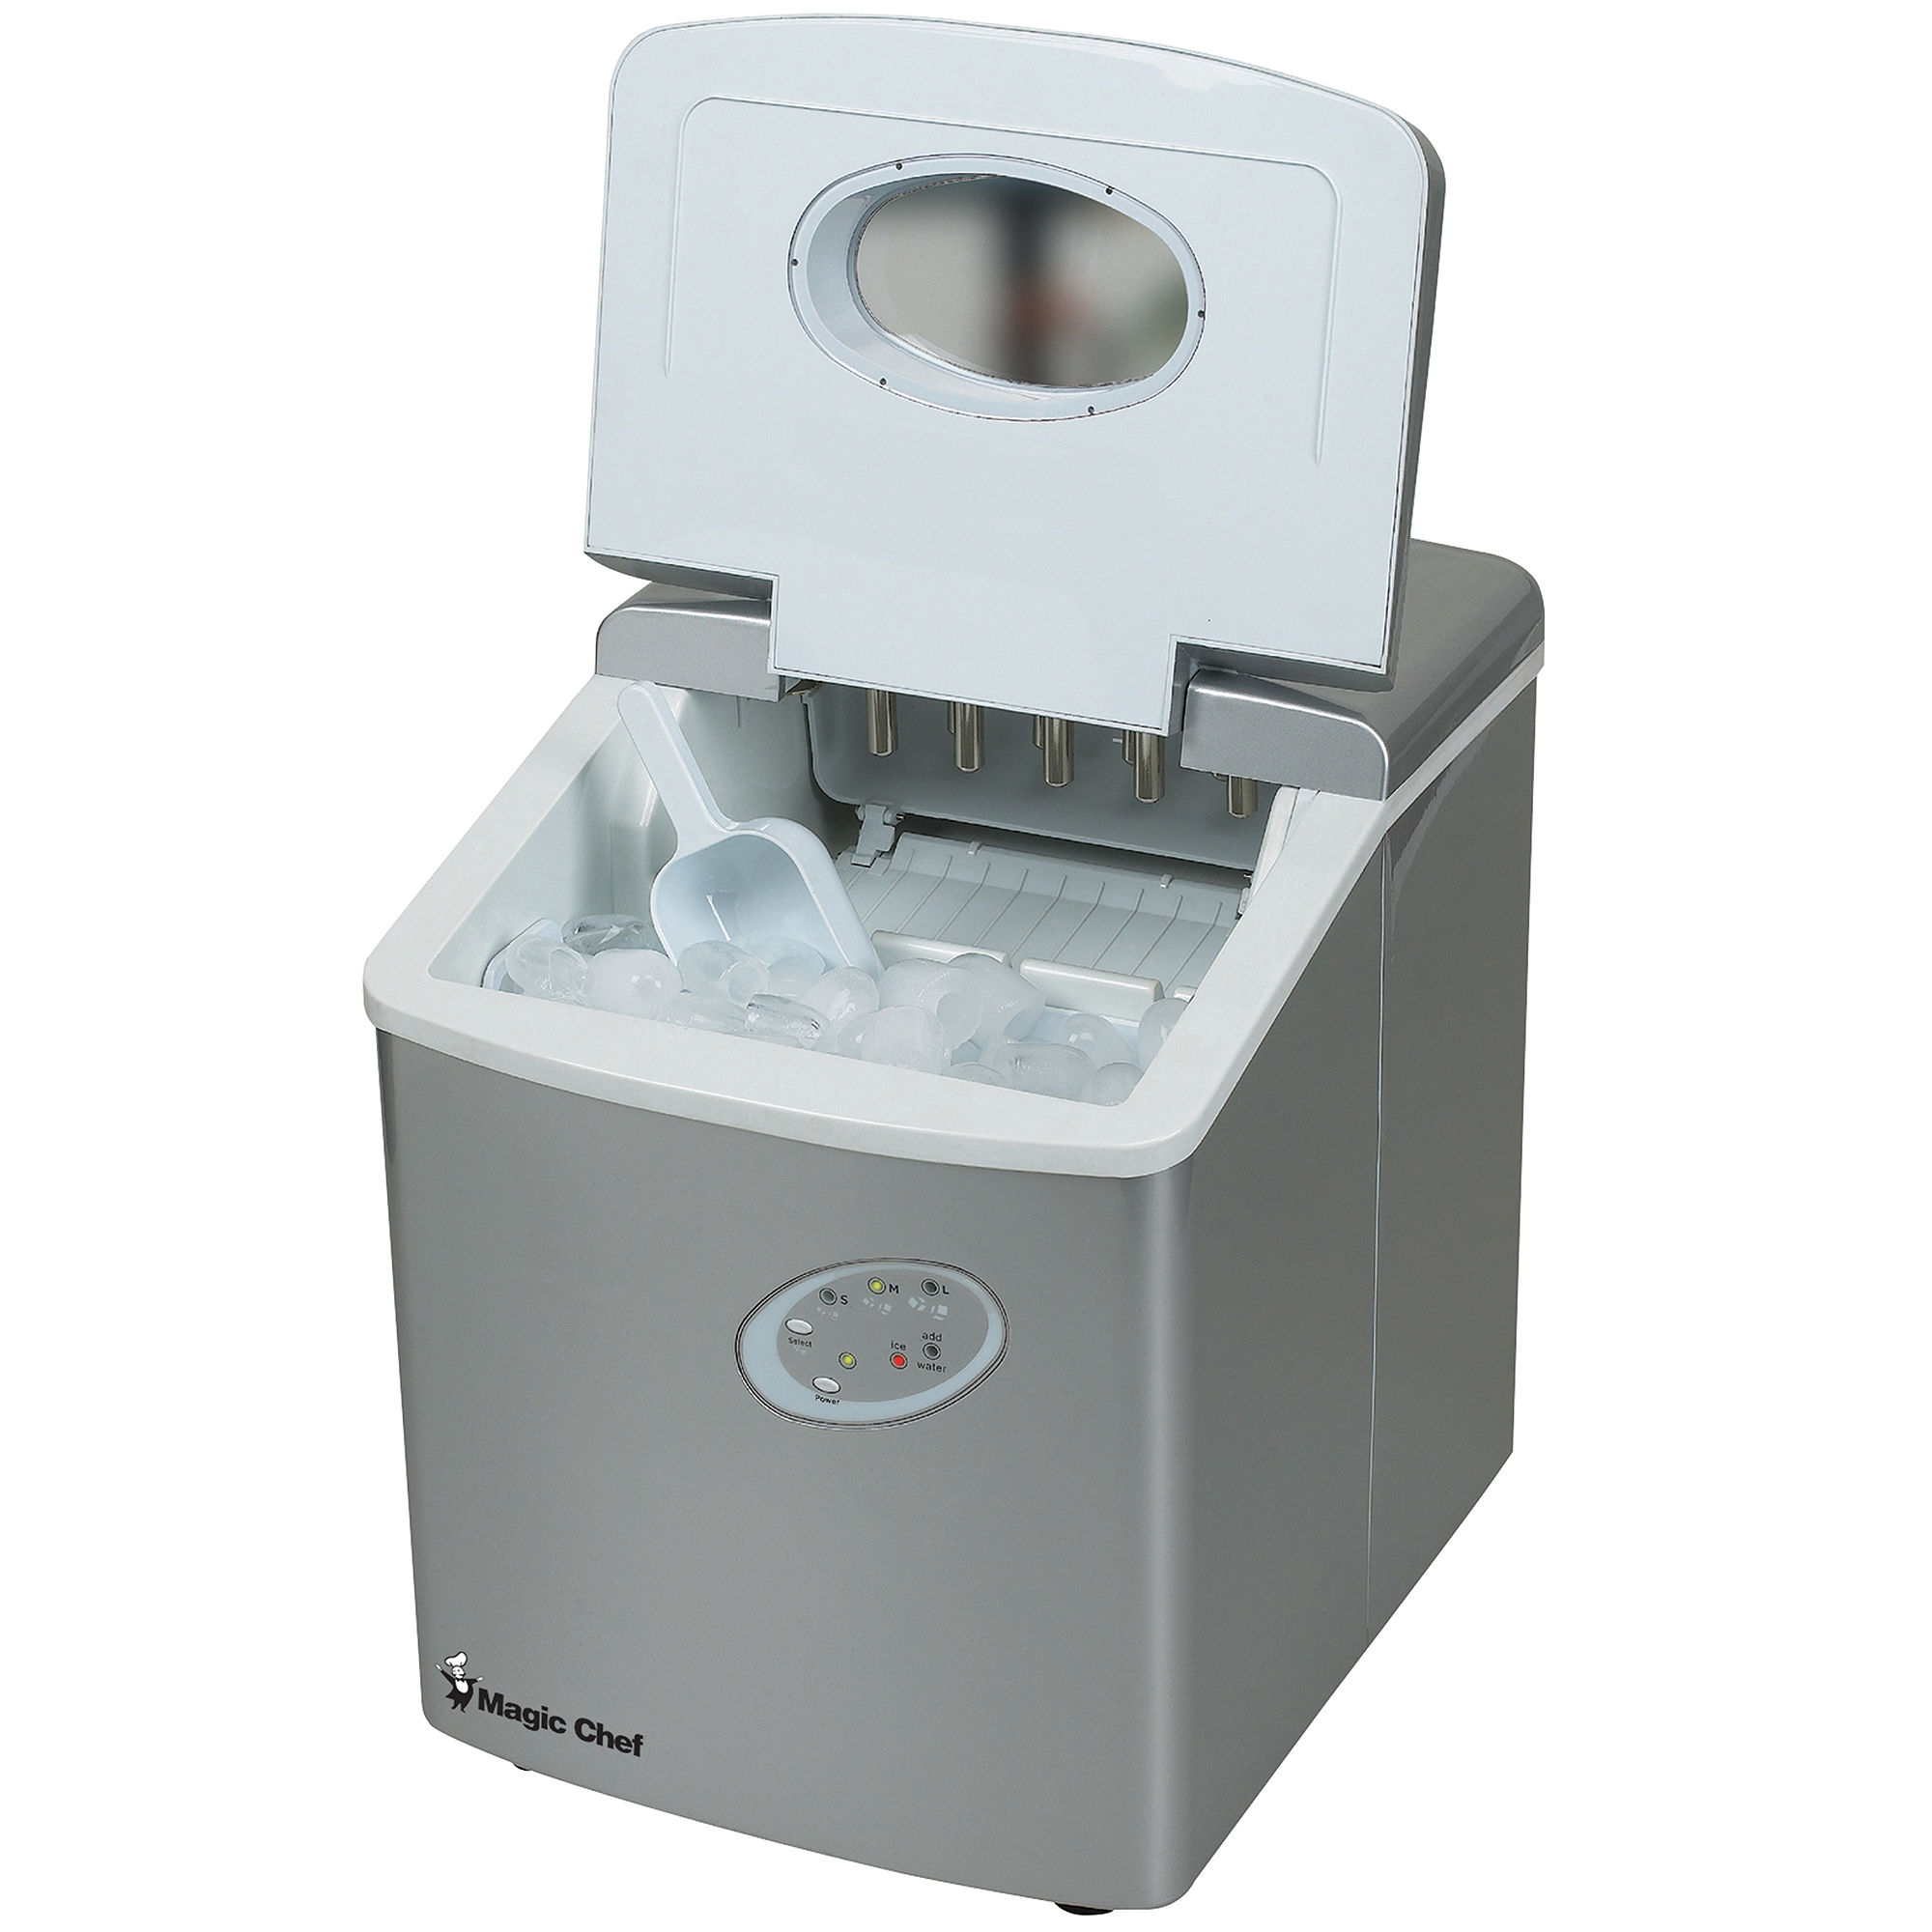 Countertop Ice Maker At Target : magic chef countertop ice maker magic chef countertop ice maker you ...